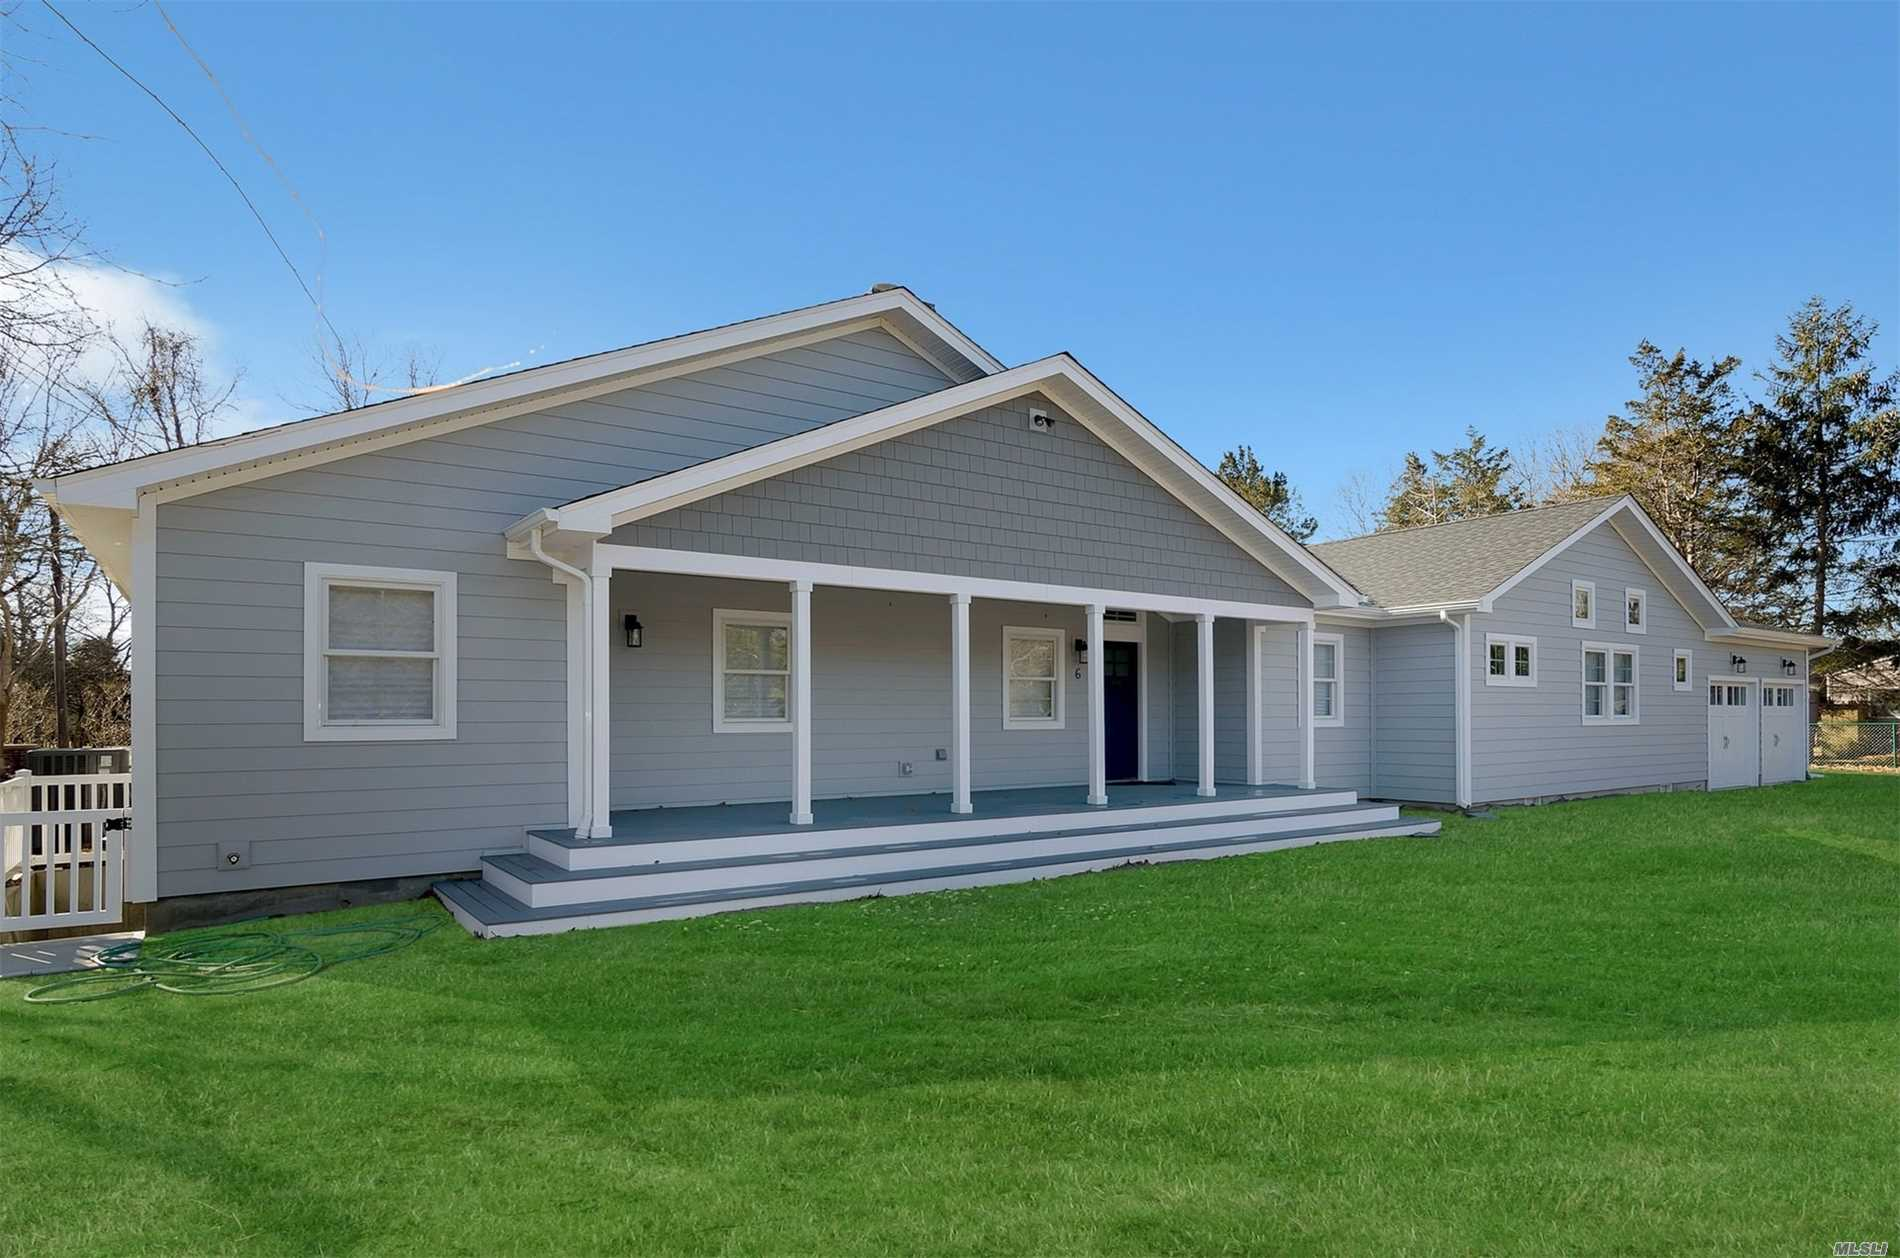 Photo of home for sale at 6 Trynz Ln, Hampton Bays NY